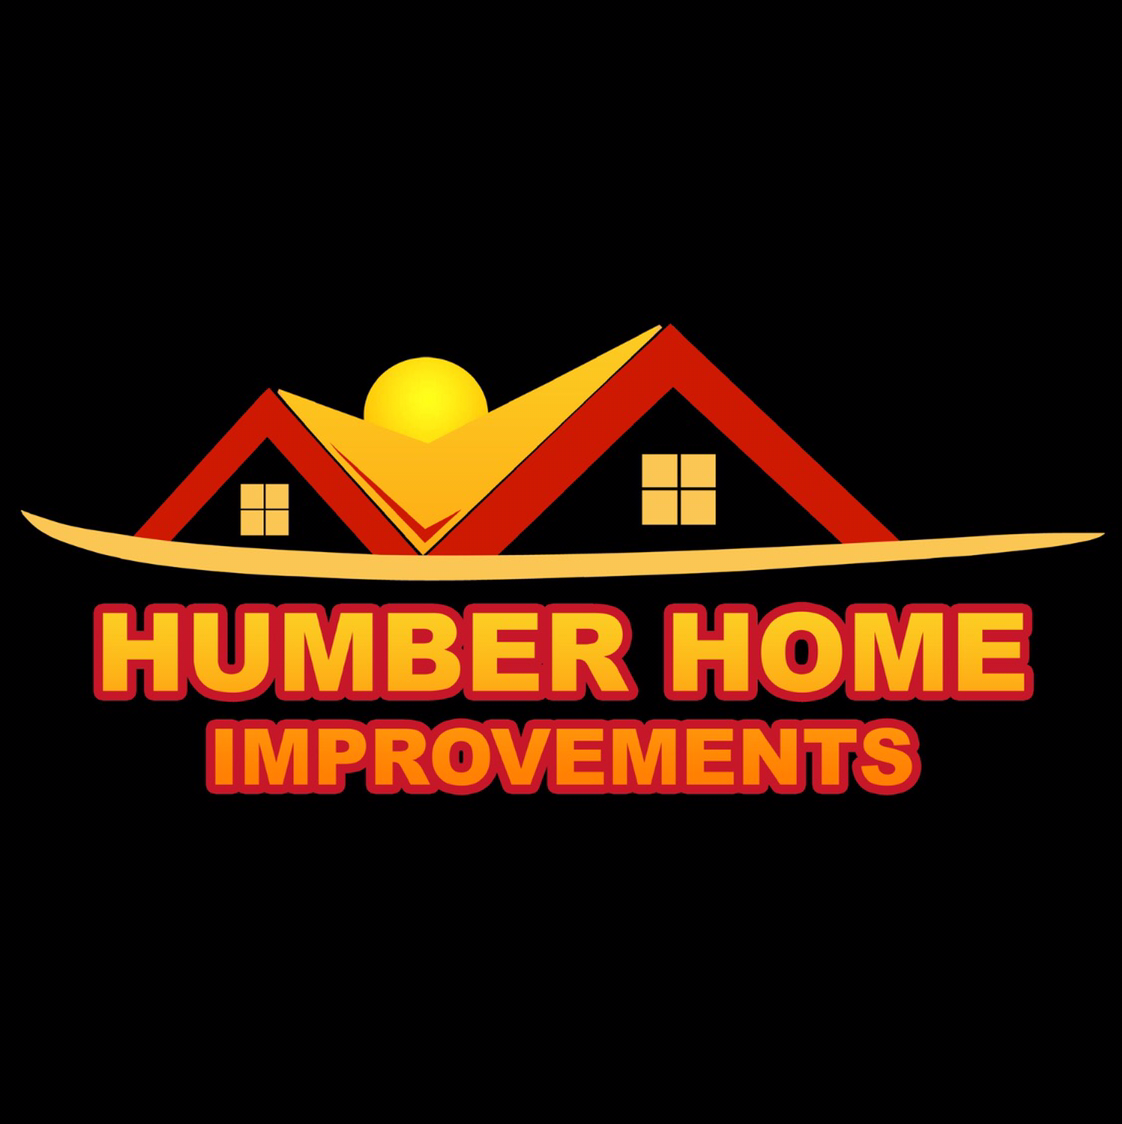 Humber Home Improvements